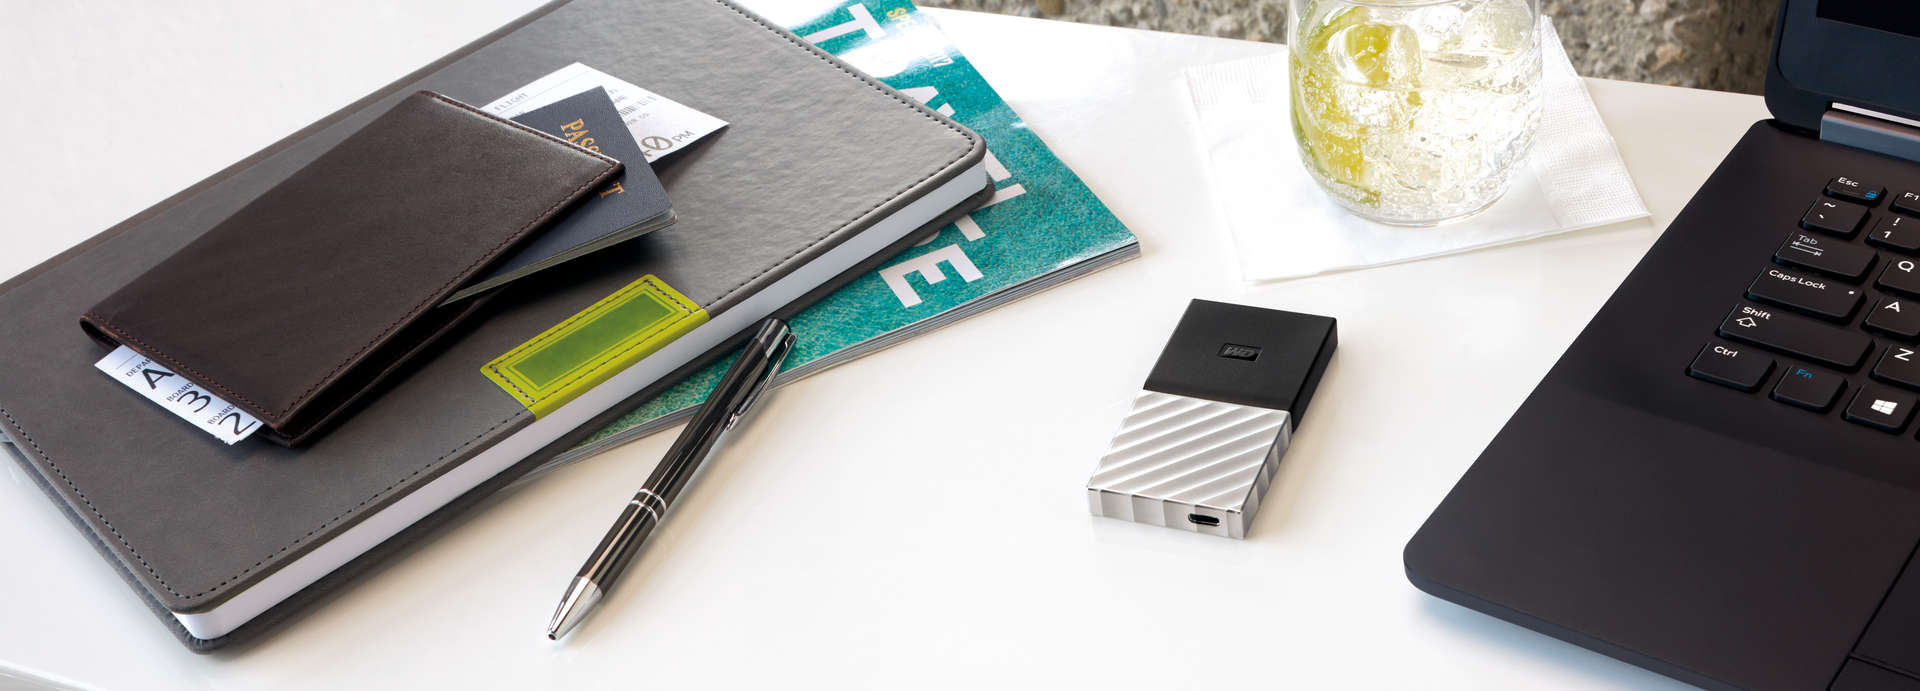 Wd Introduces My Passport Ssd Portable Drive Hardisk Pasport External 256gb The Drives Offering Consumers A Compact Sleek And Faster Data Storage Solution Is